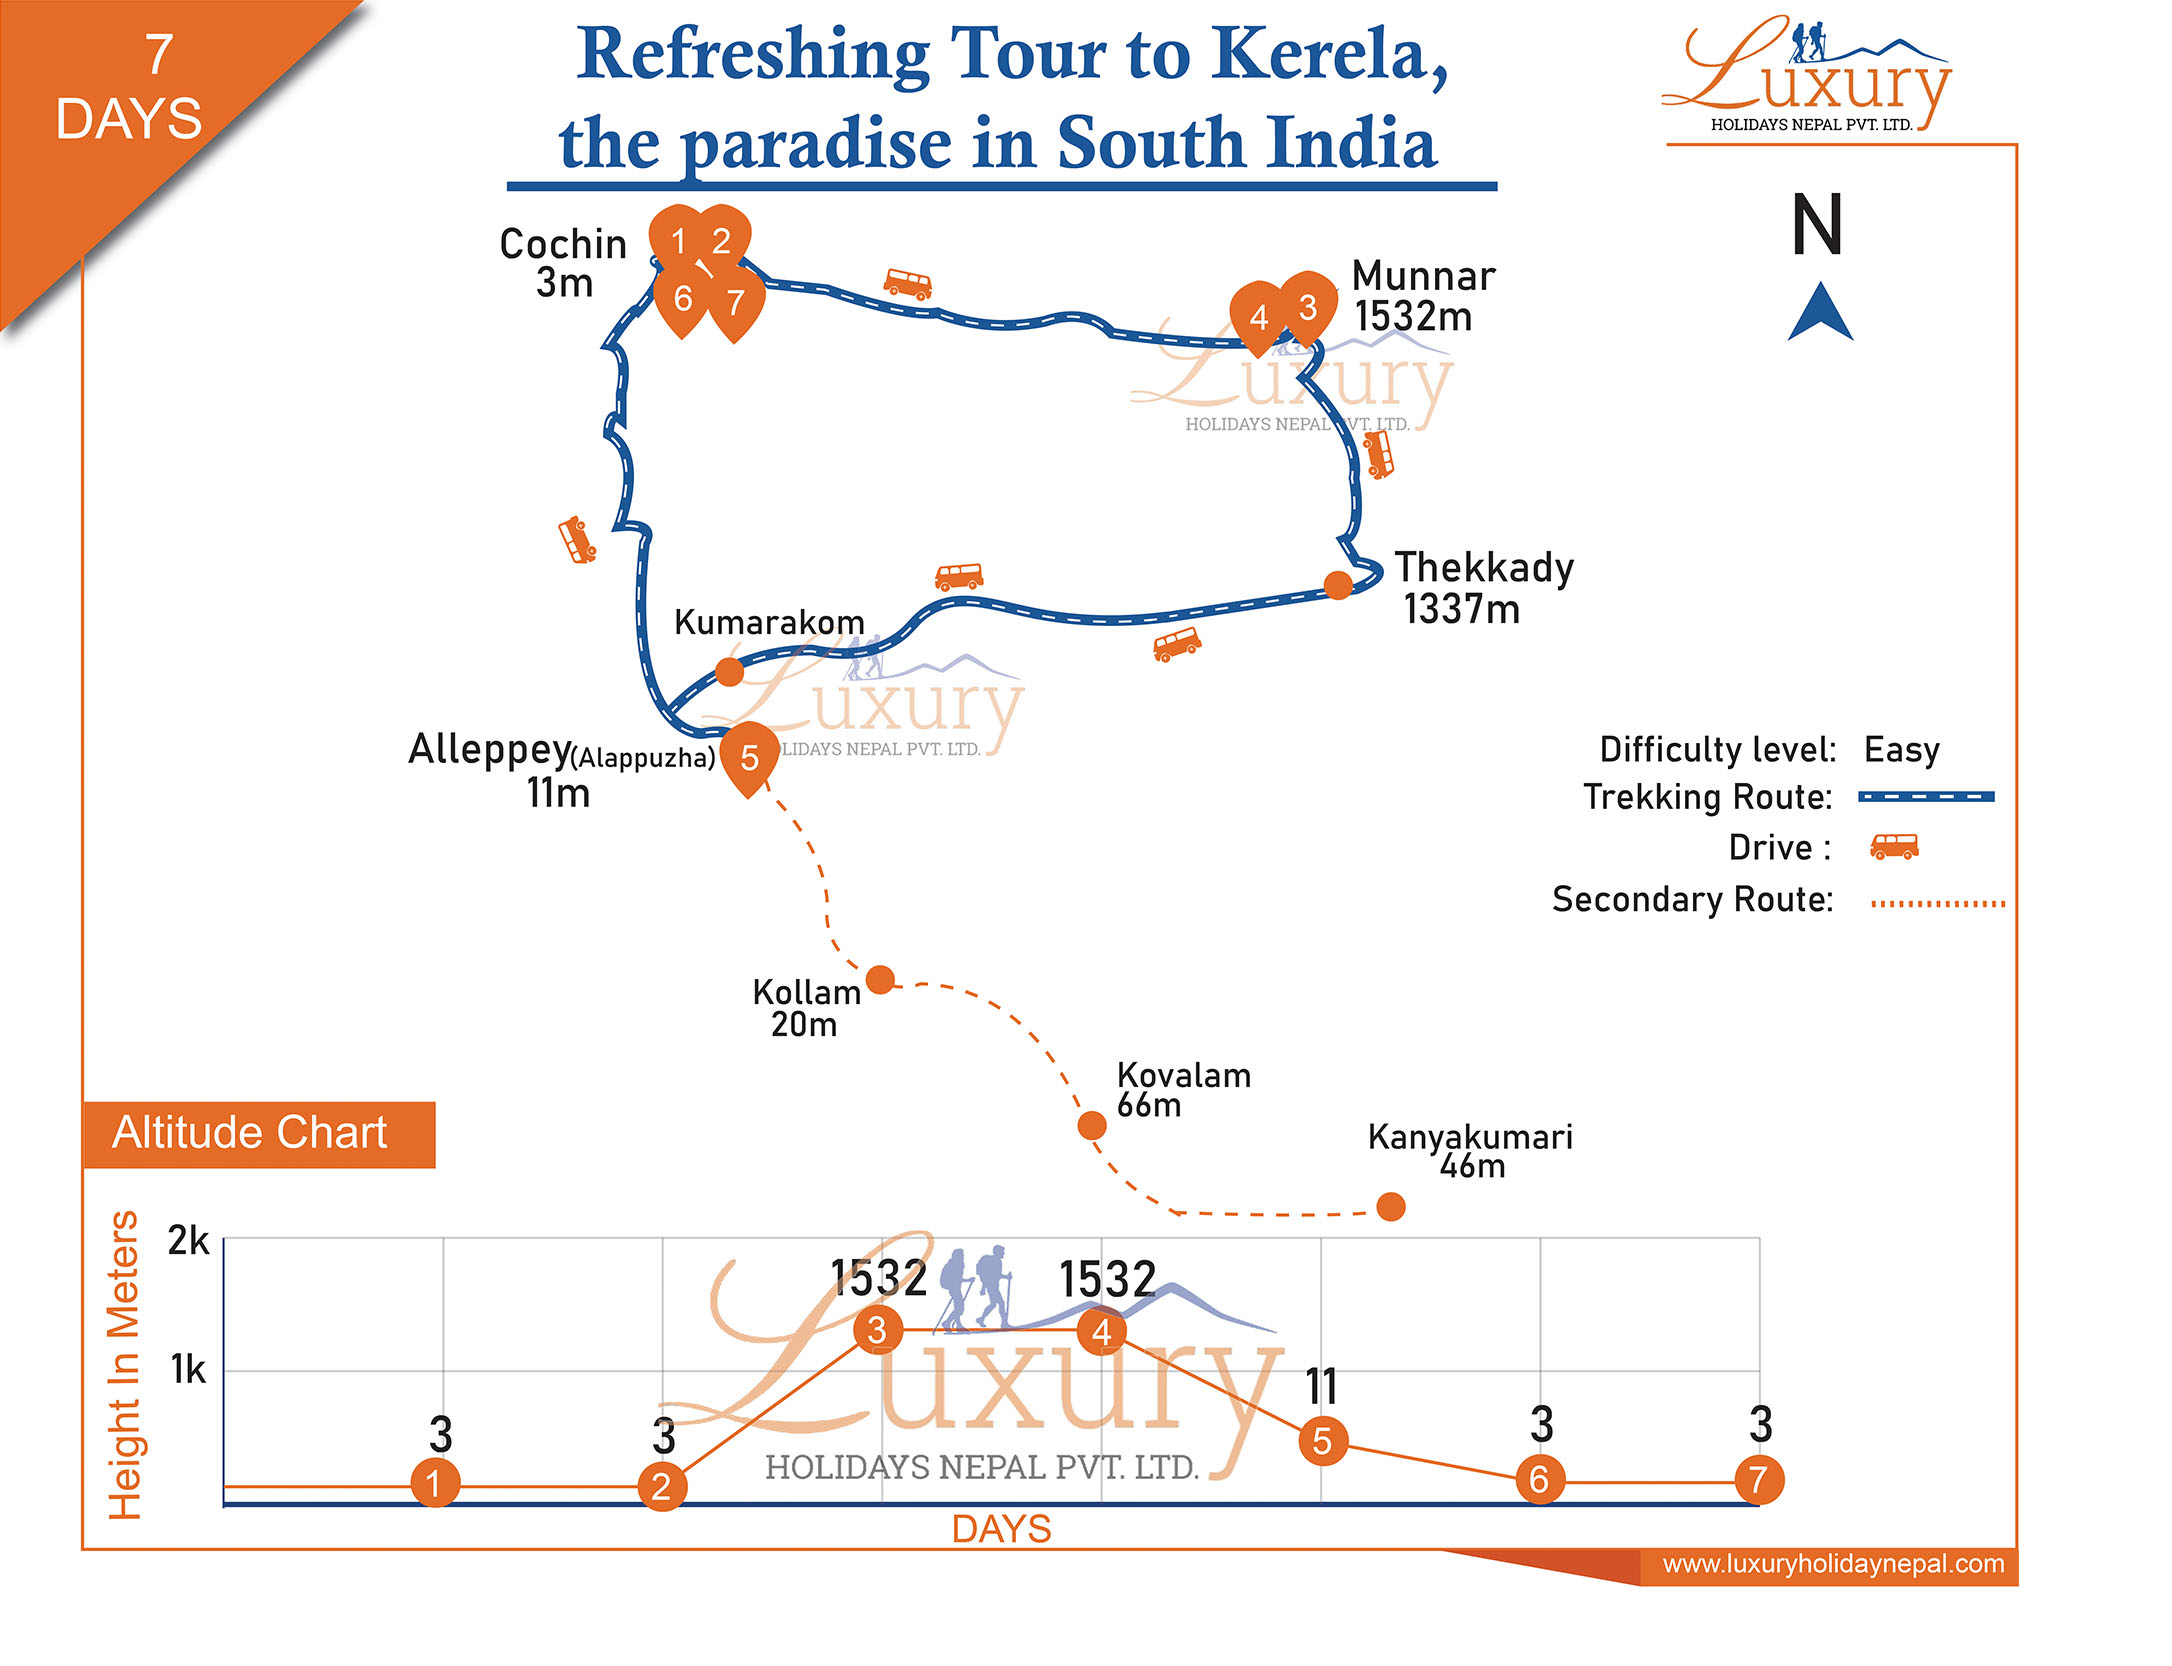 Refreshing Tour to Kerala, the Paradise in South India Trip Map